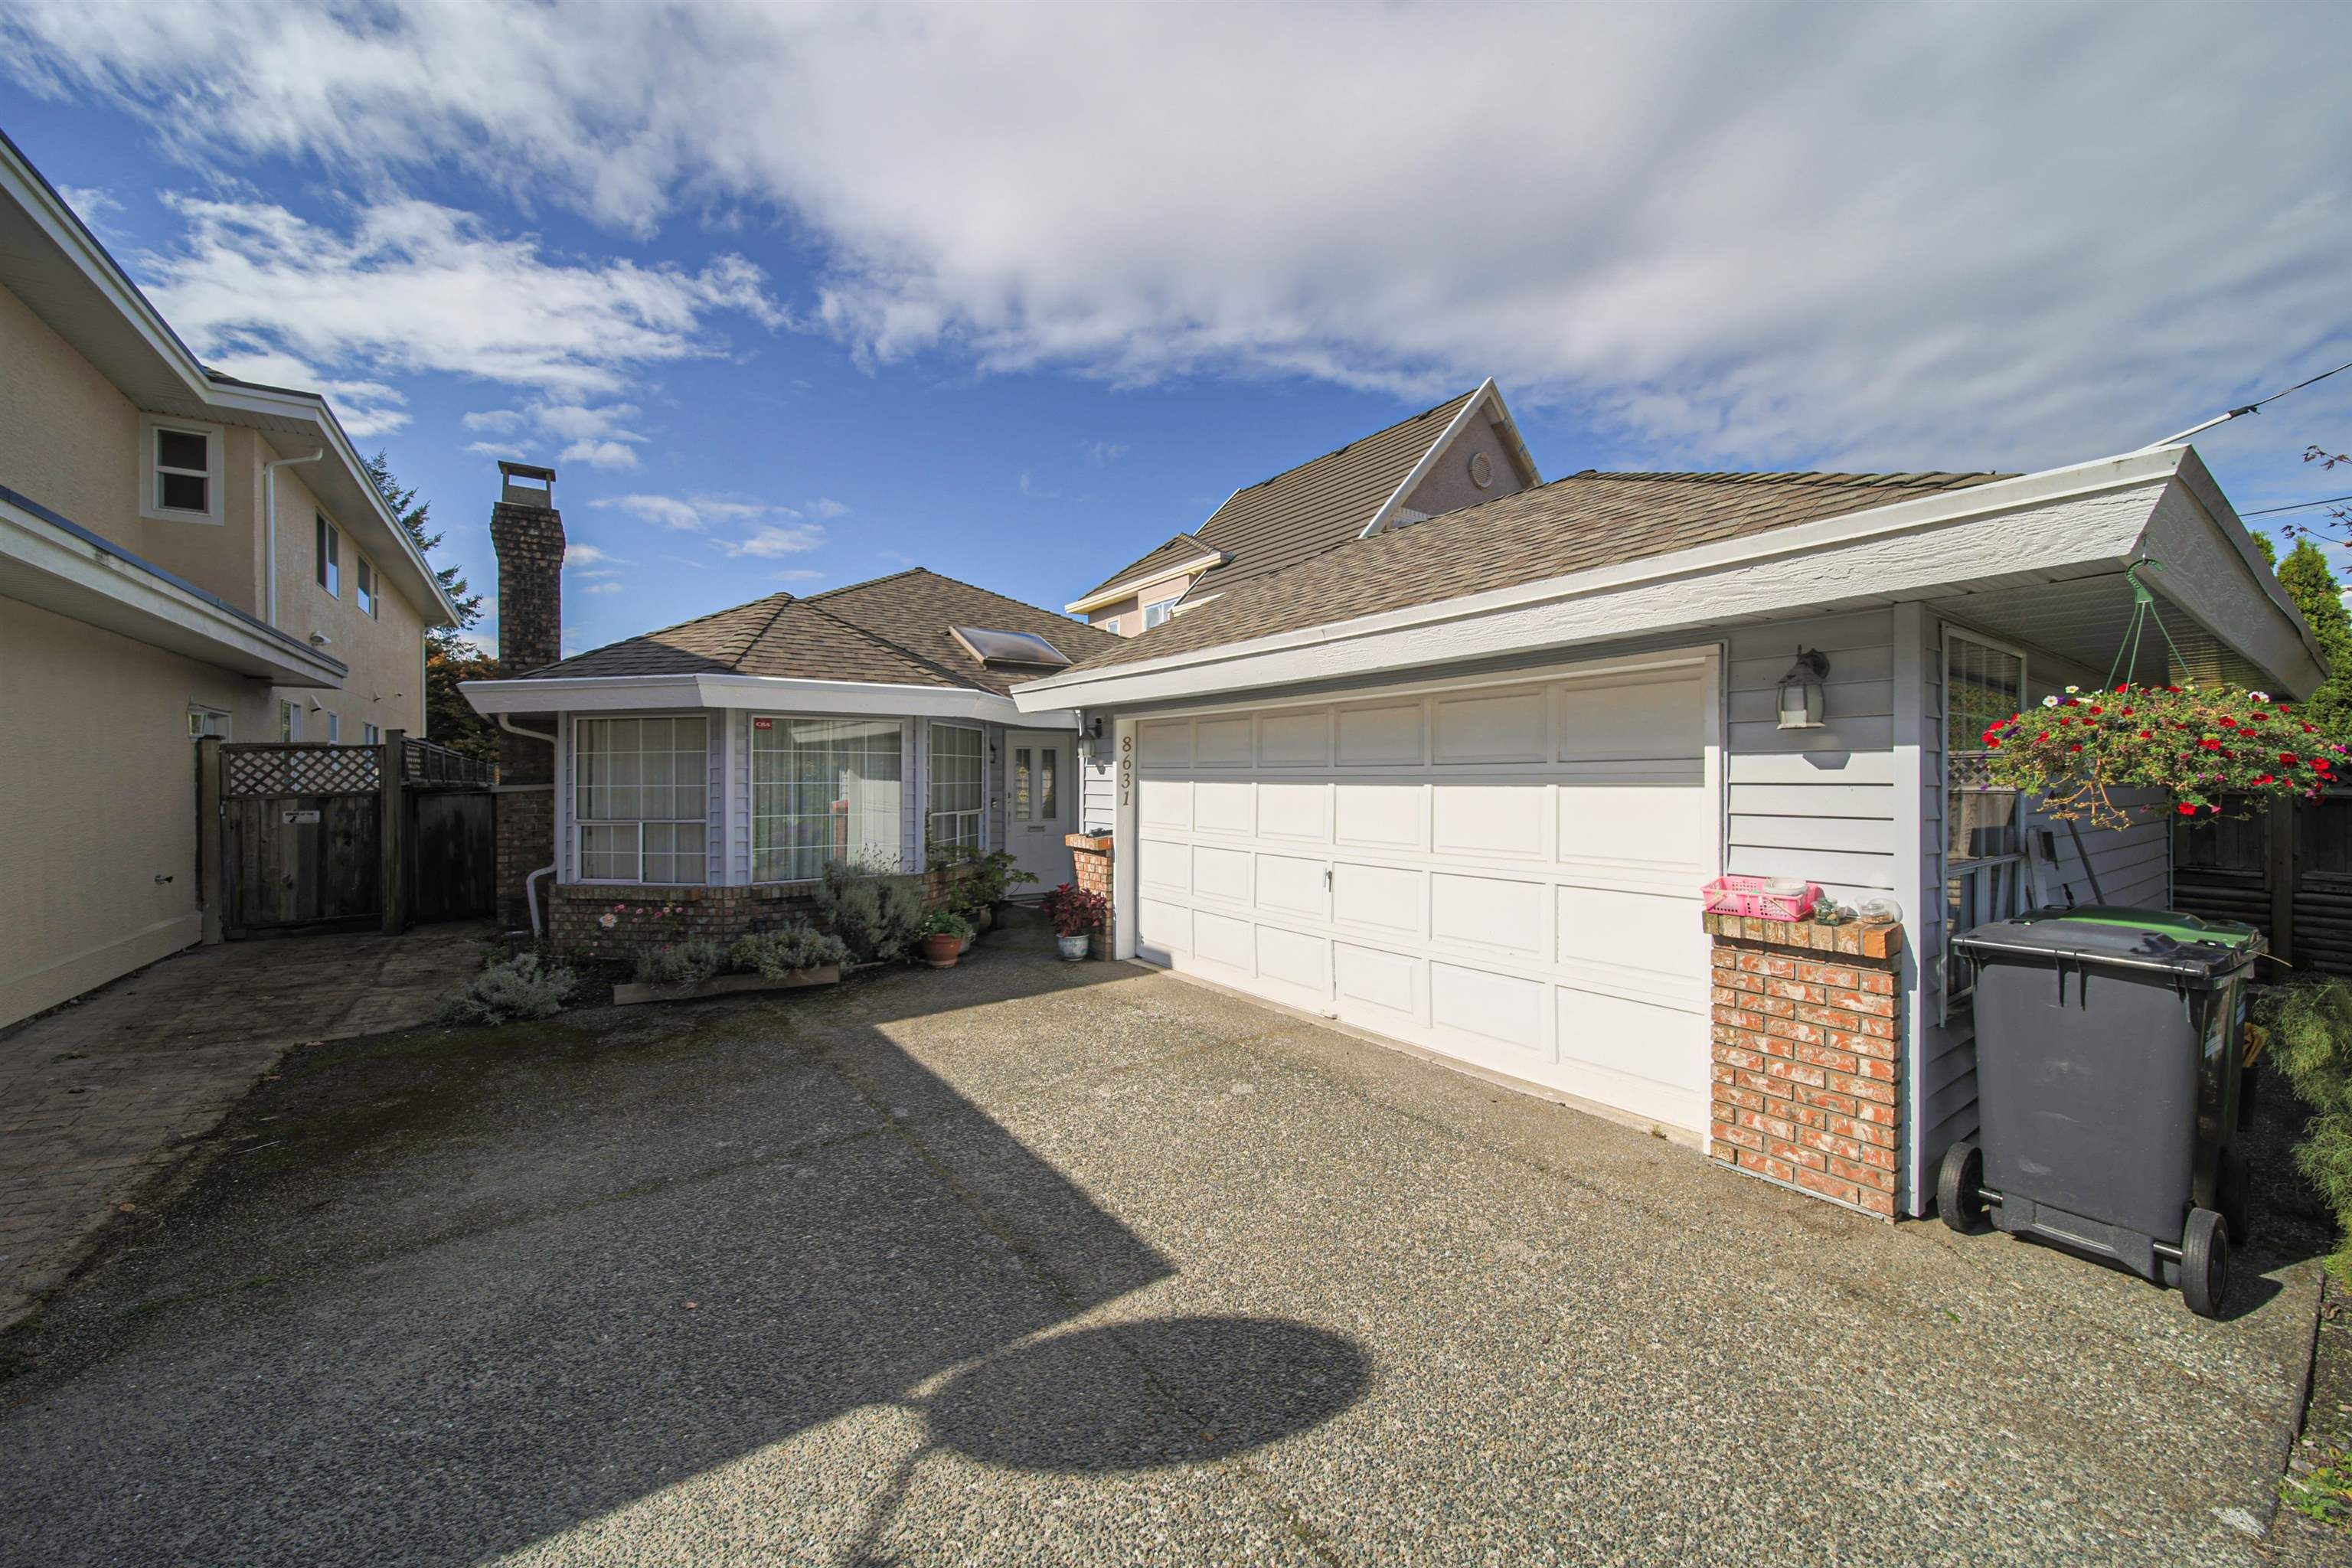 Main Photo: 8631 NO. 2 Road in Richmond: Lackner House for sale : MLS®# R2623289